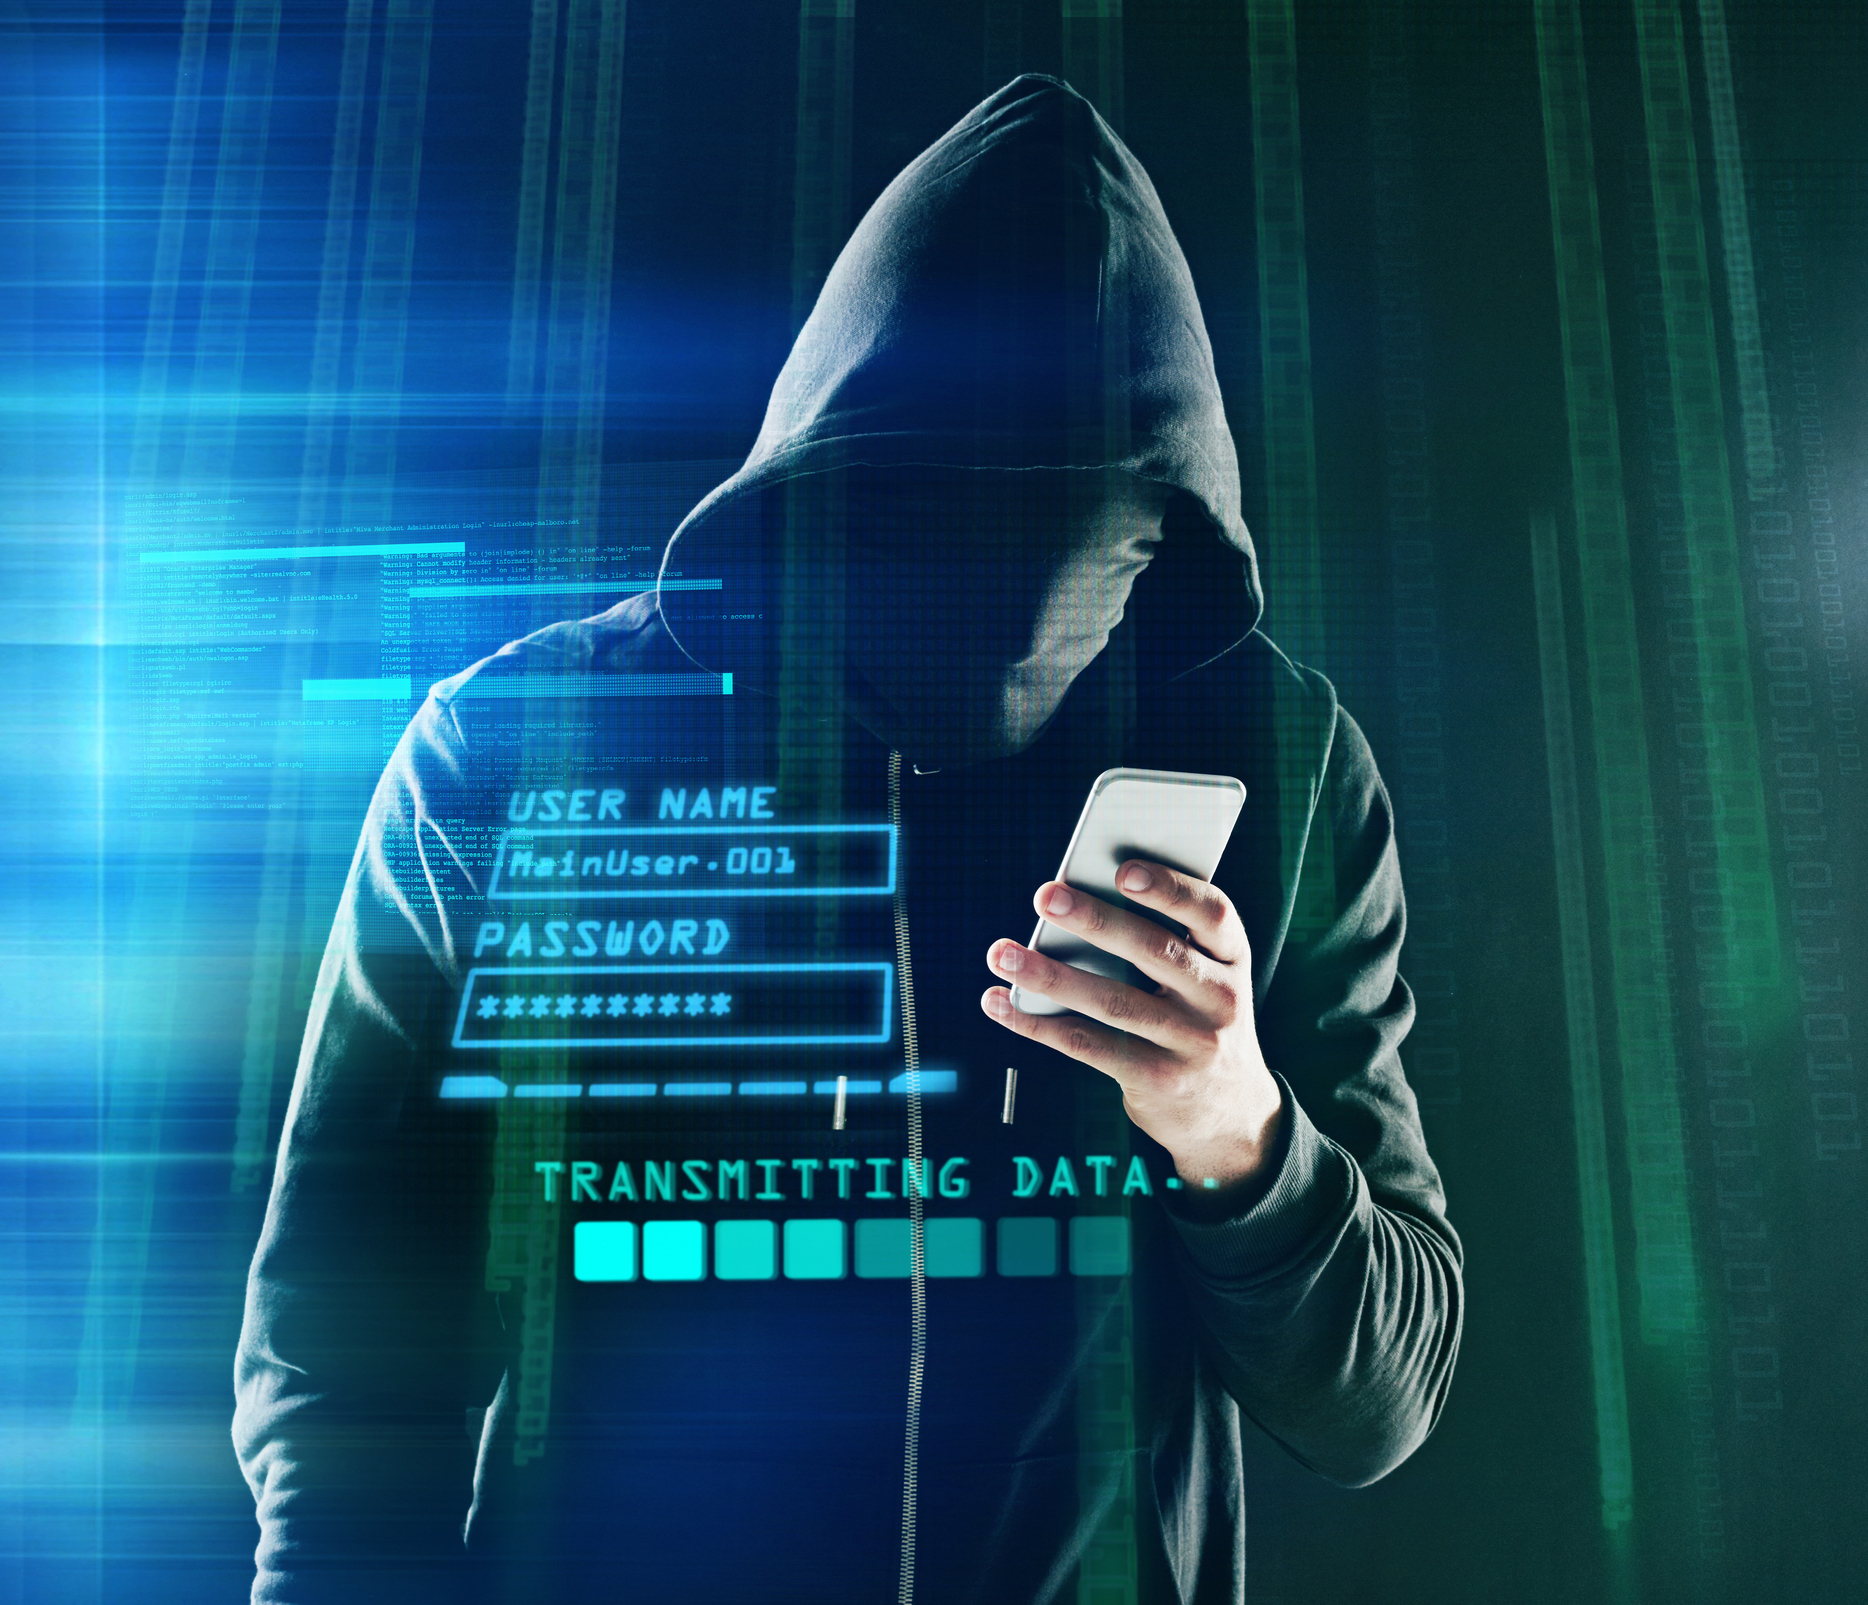 How to Remove Hacker from Your Phone